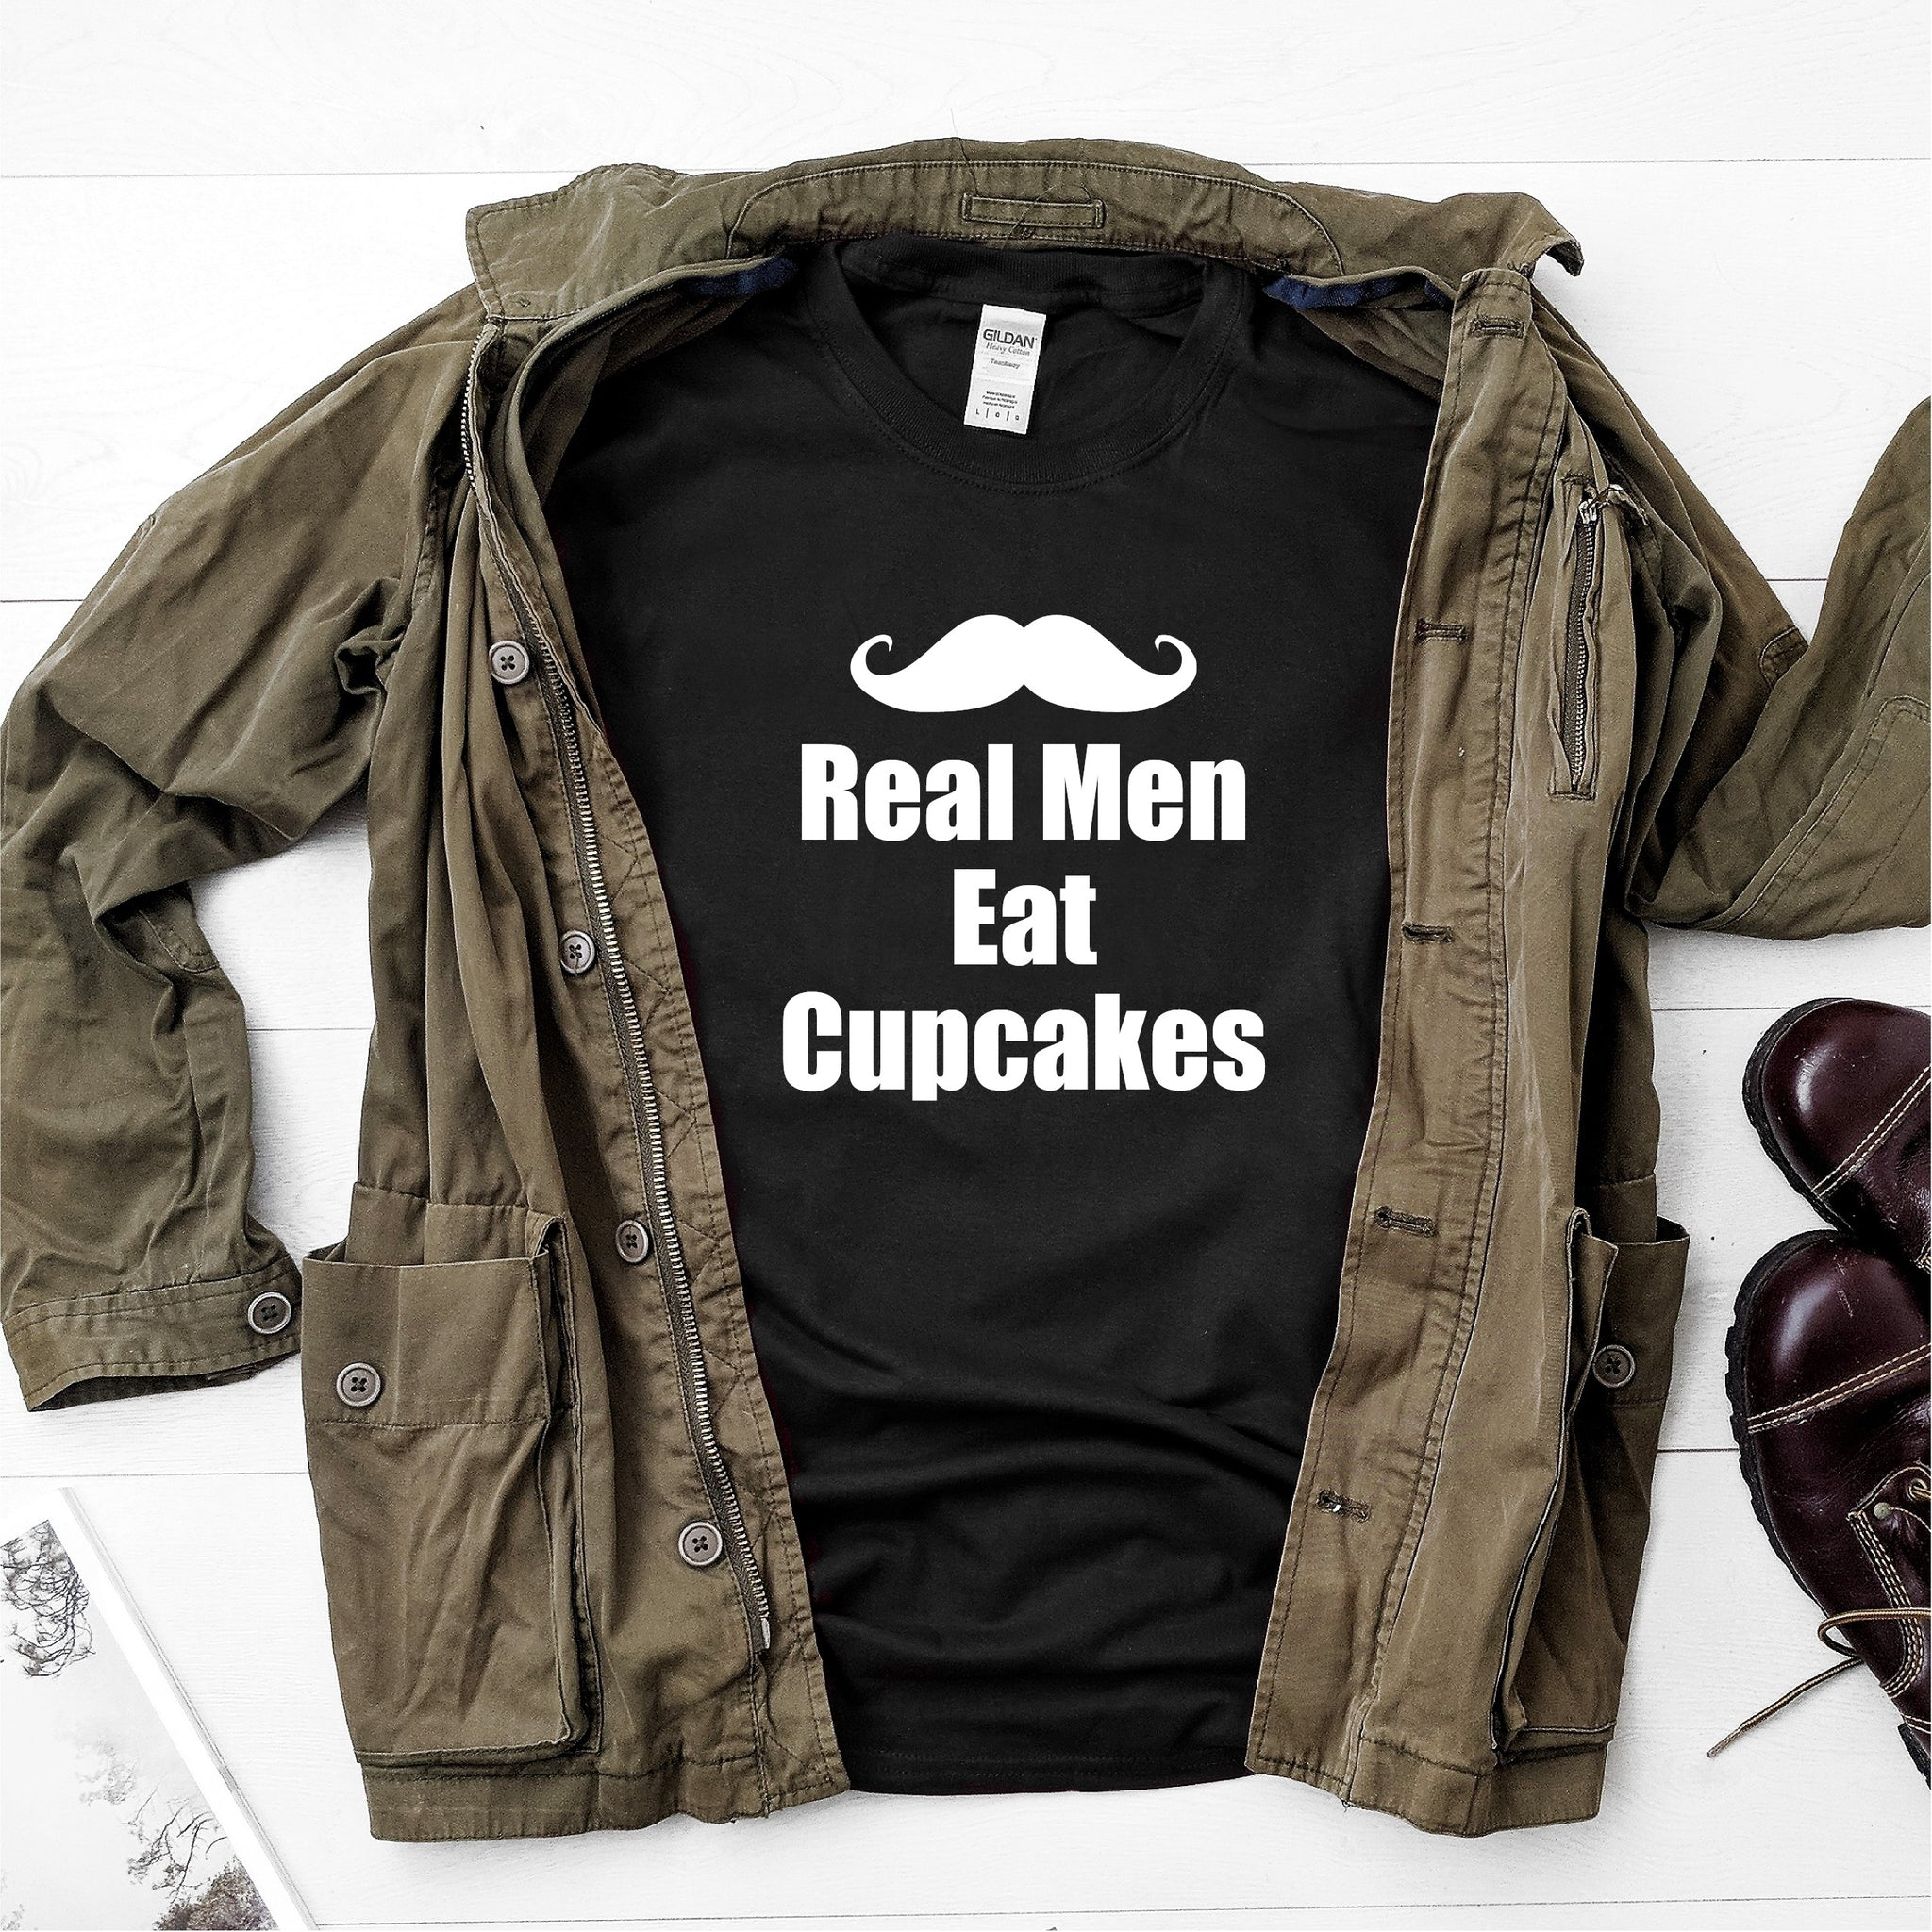 Real men eat cupcakes- Ultra Cotton Short Sleeve T-Shirt - DFHM39